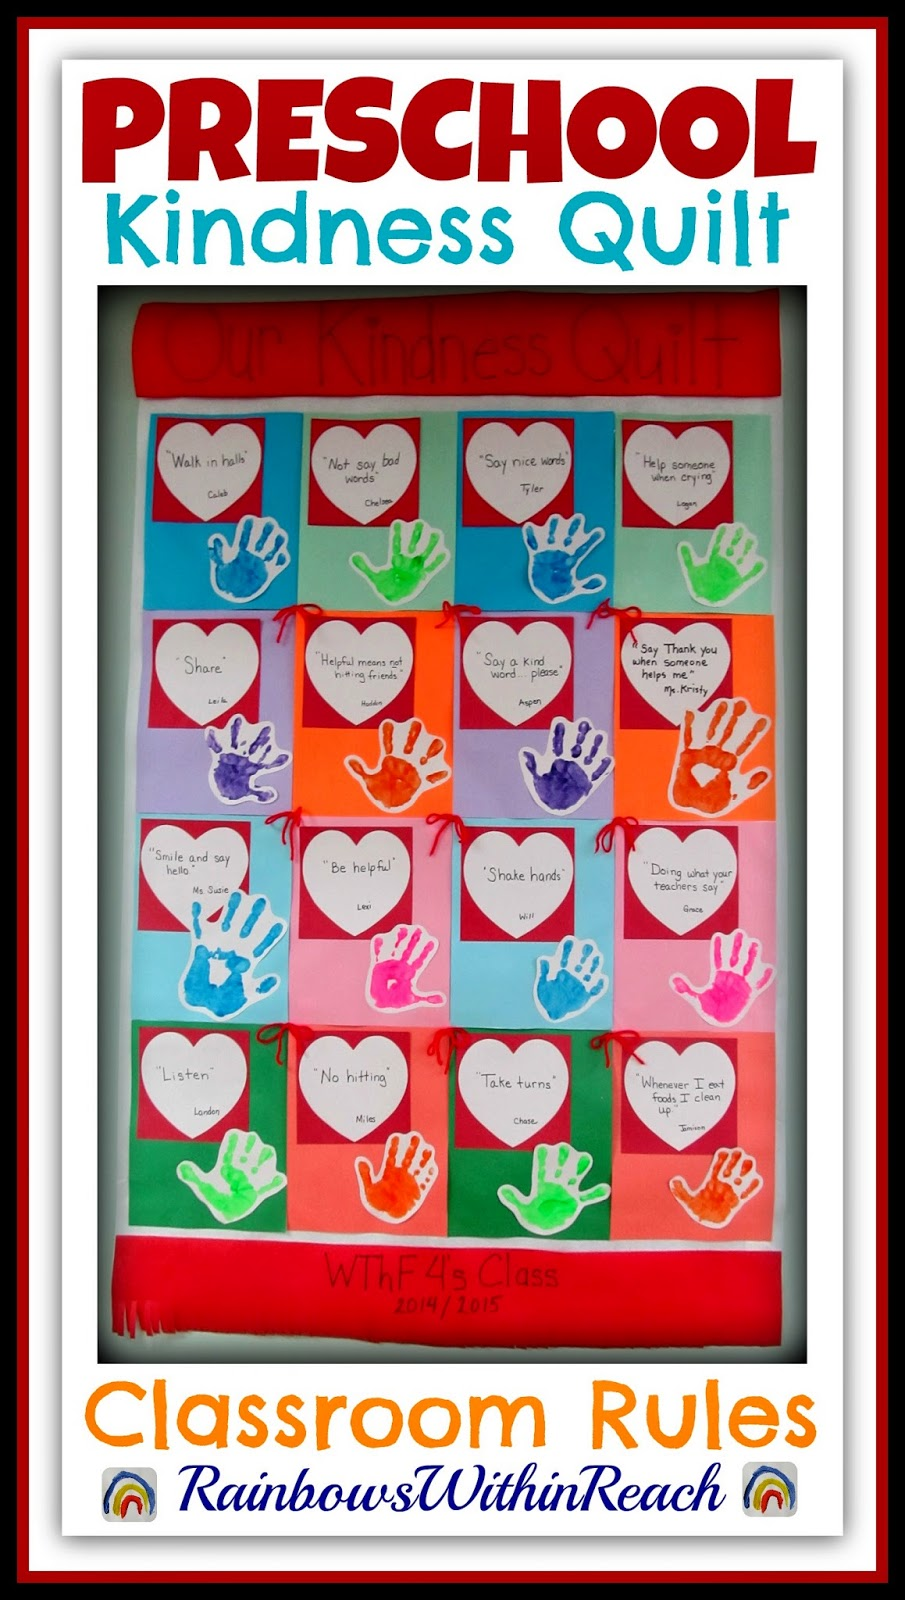 """Our Kindness Quilt"" Preschool Insight into Kindness via RainbowsWithinReach"